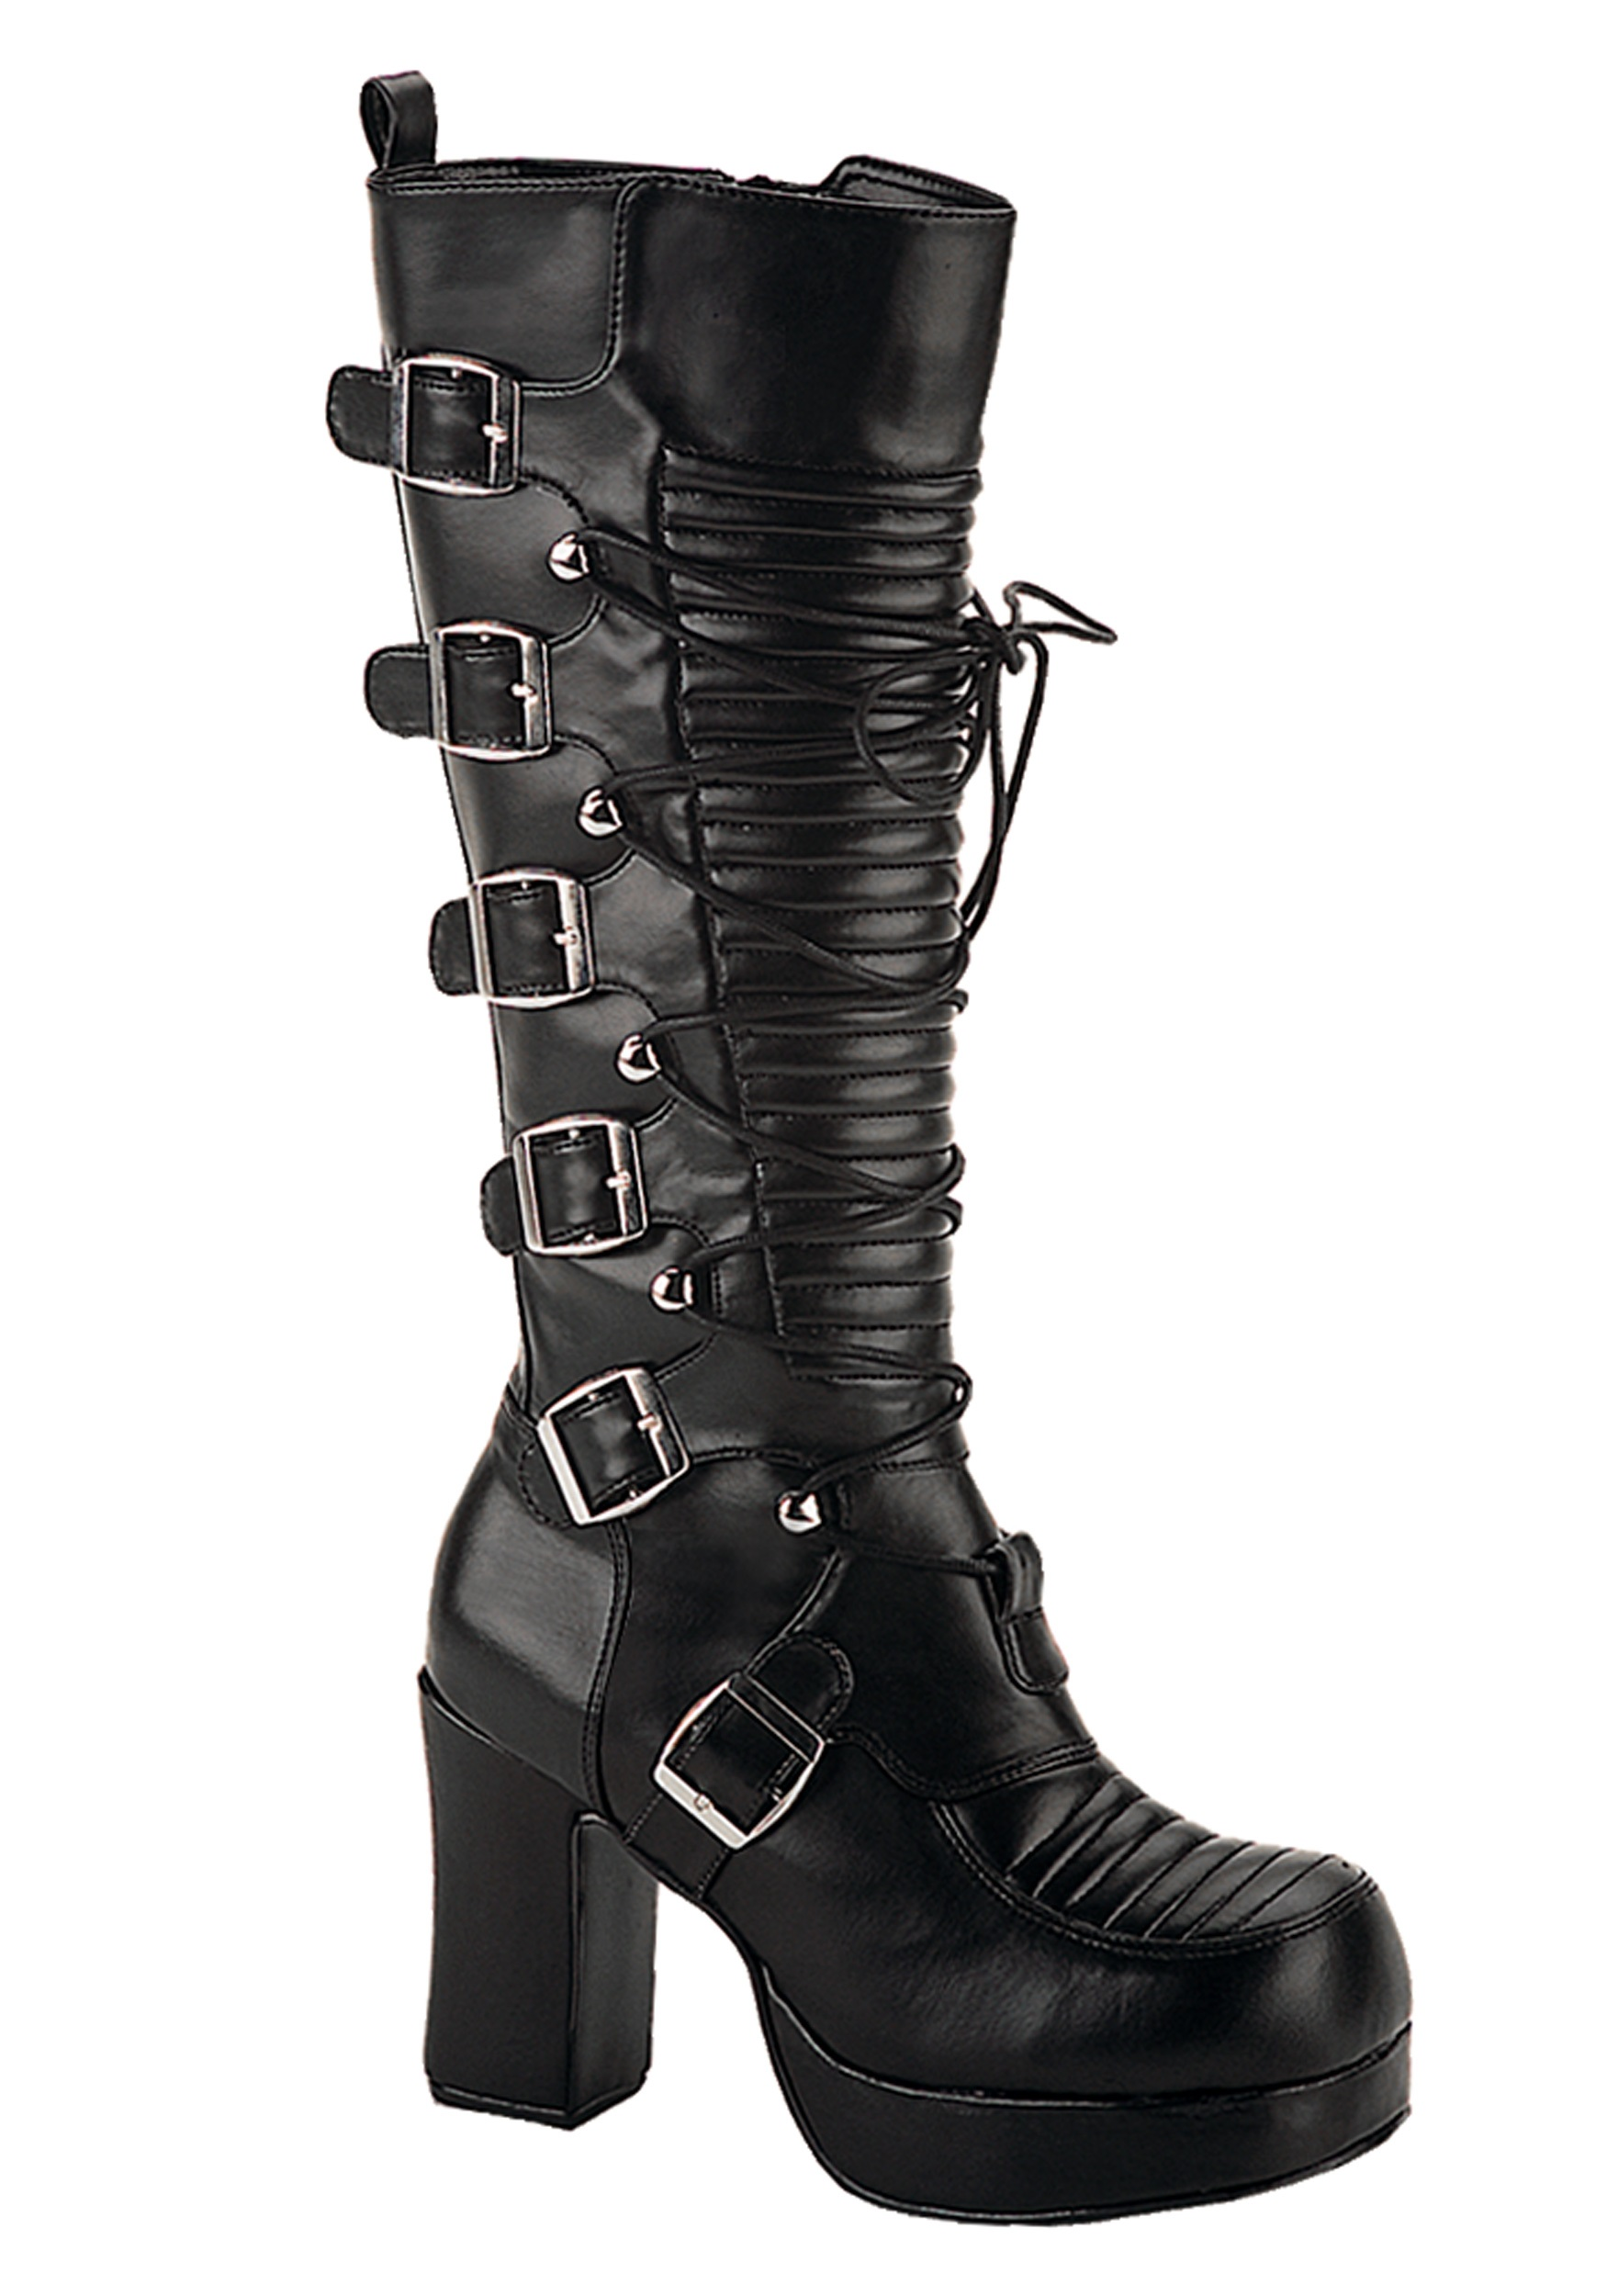 Women's Goth Boots